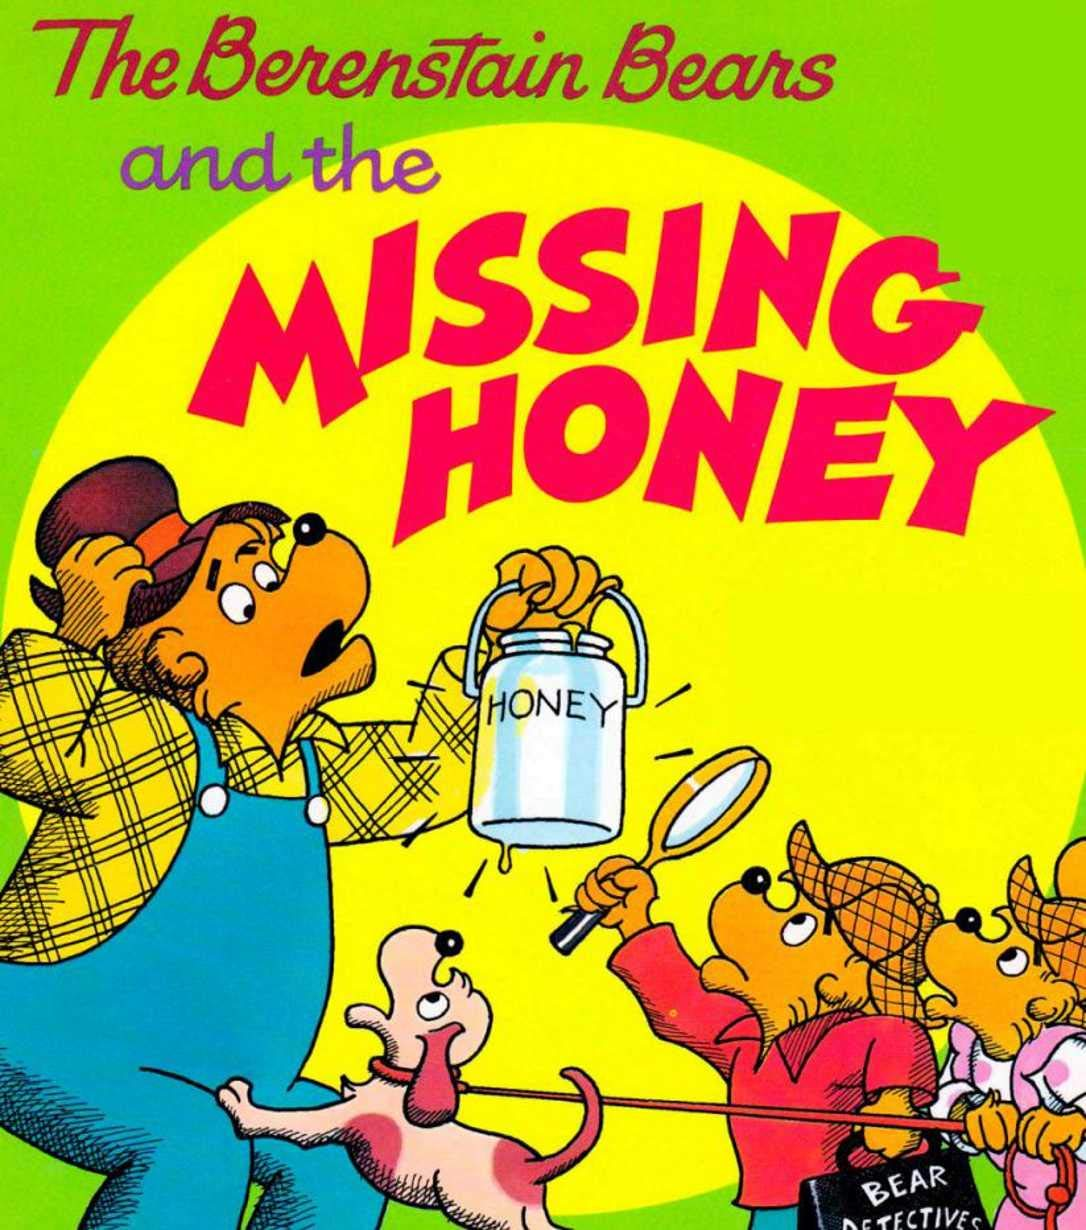 The Berenstain Bears and the Missing Honey: Children s growth picture book